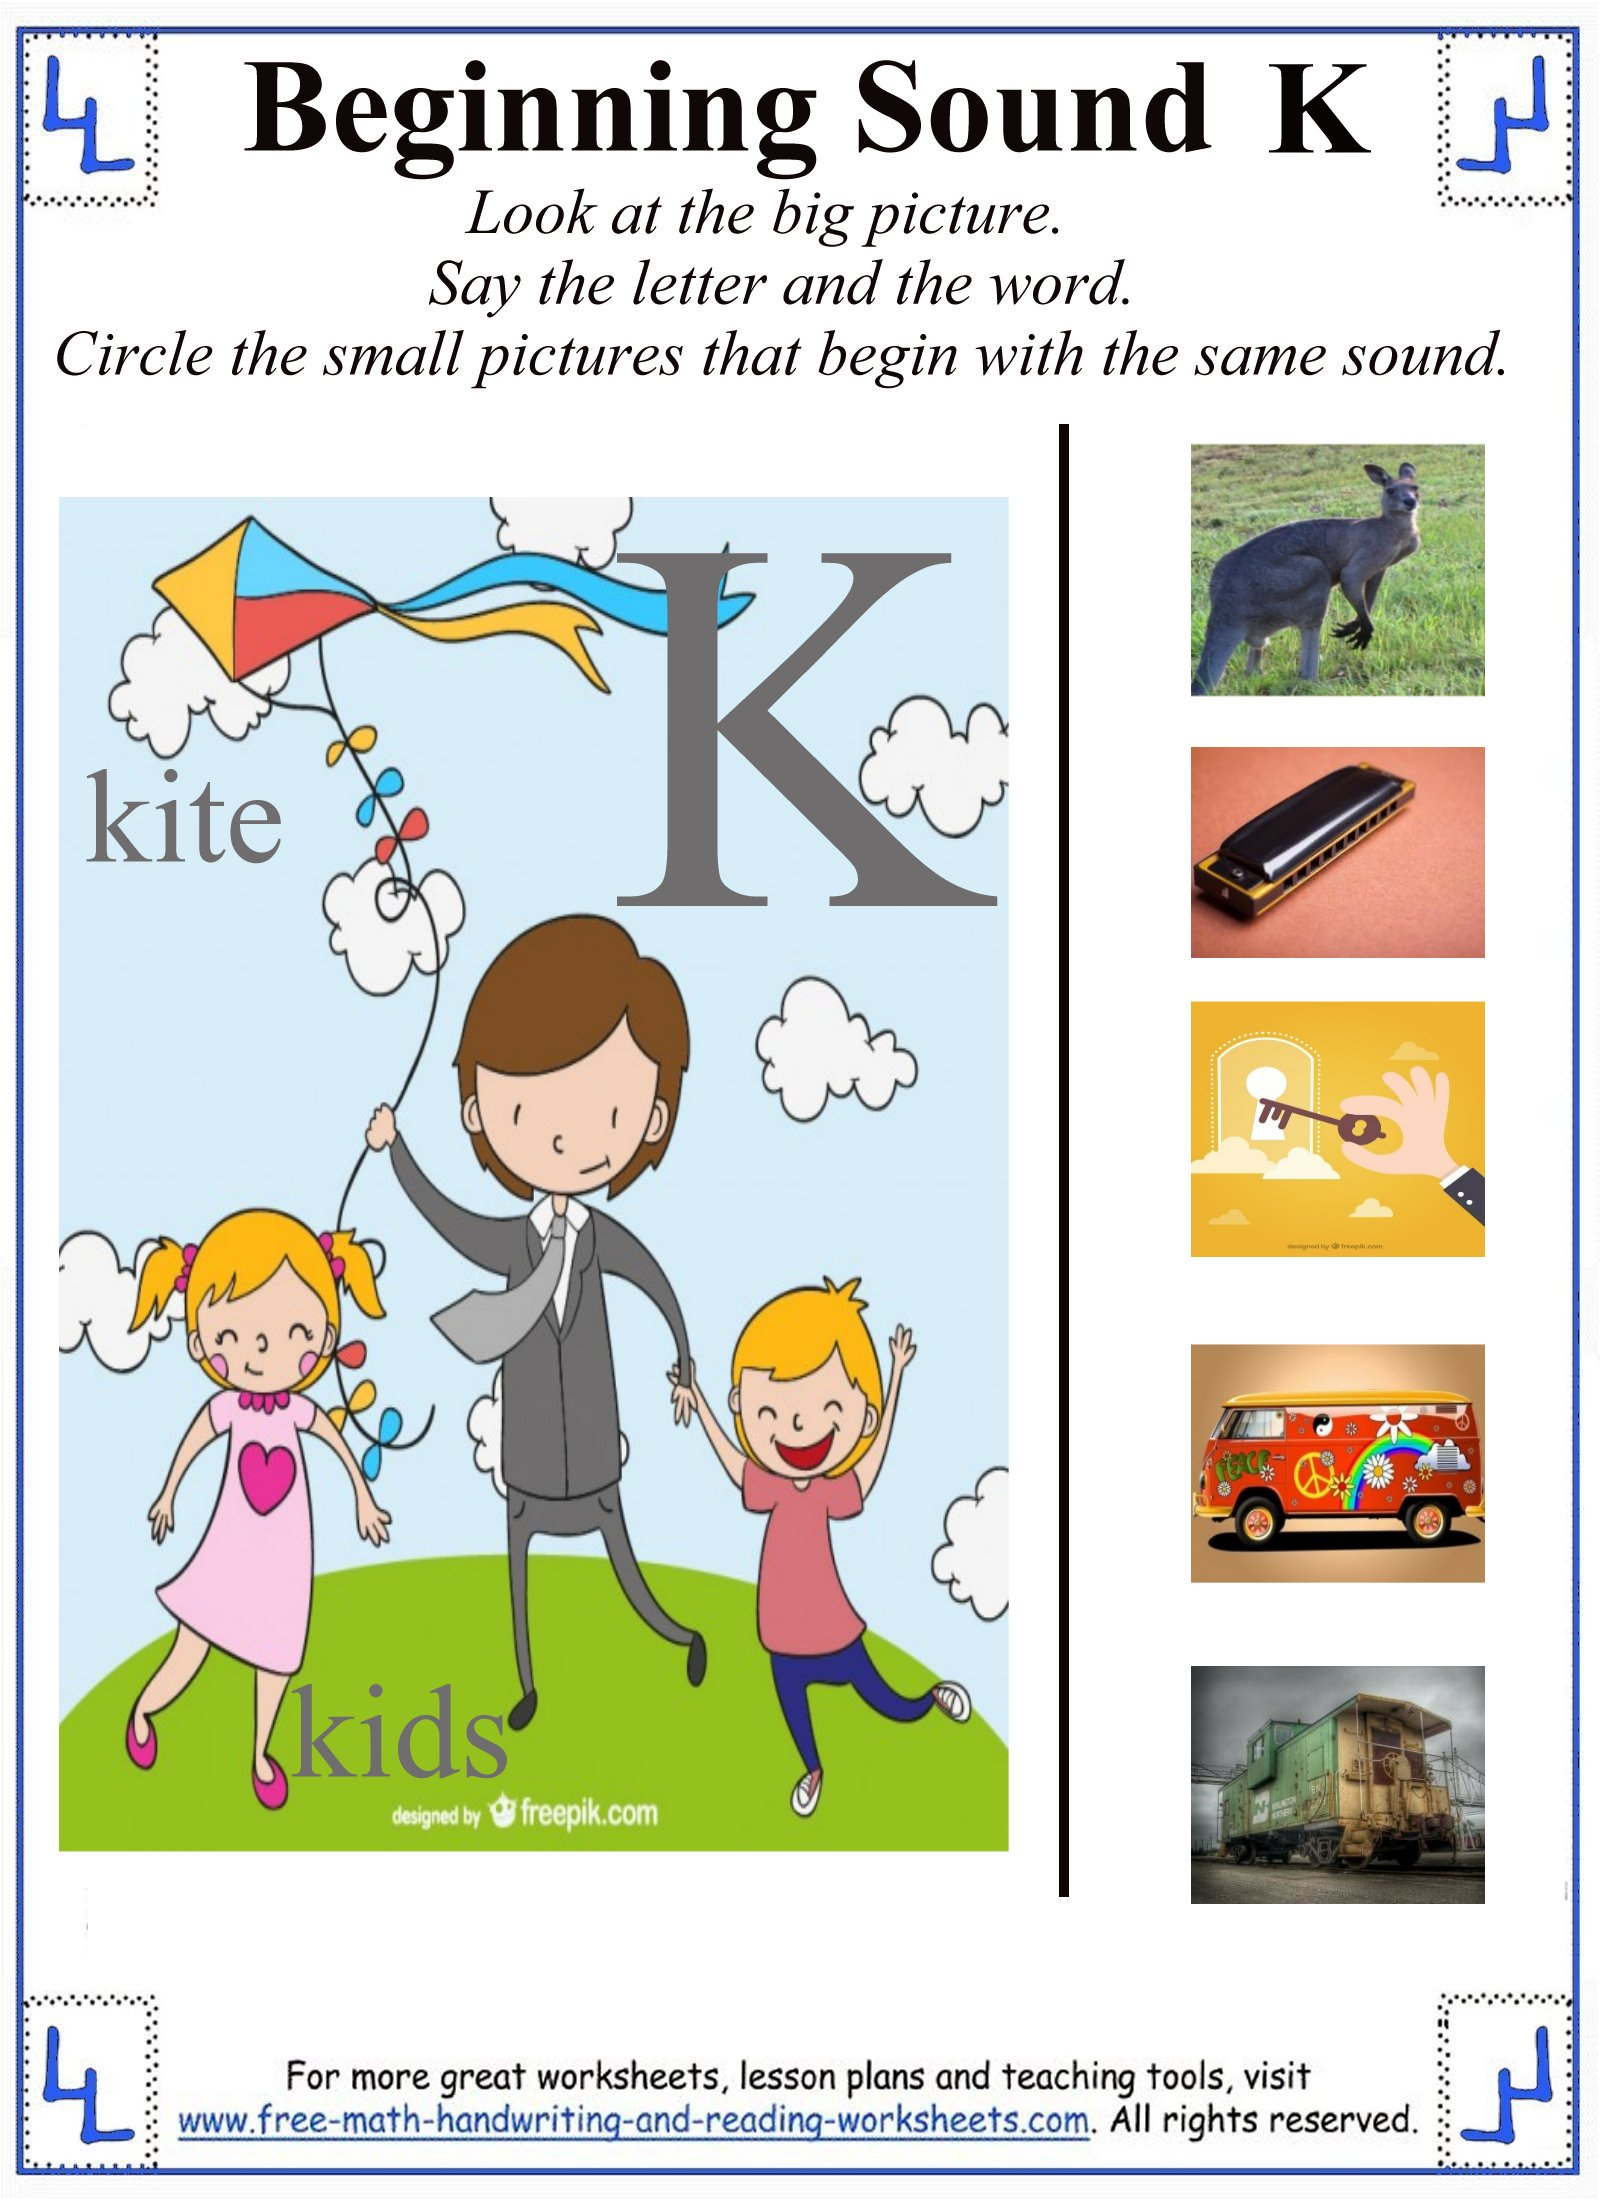 8 letter words starting with j letter k worksheets activities 20297 | xletter k worksheet 1.jpg.pagespeed.ic.esbLF8 57y